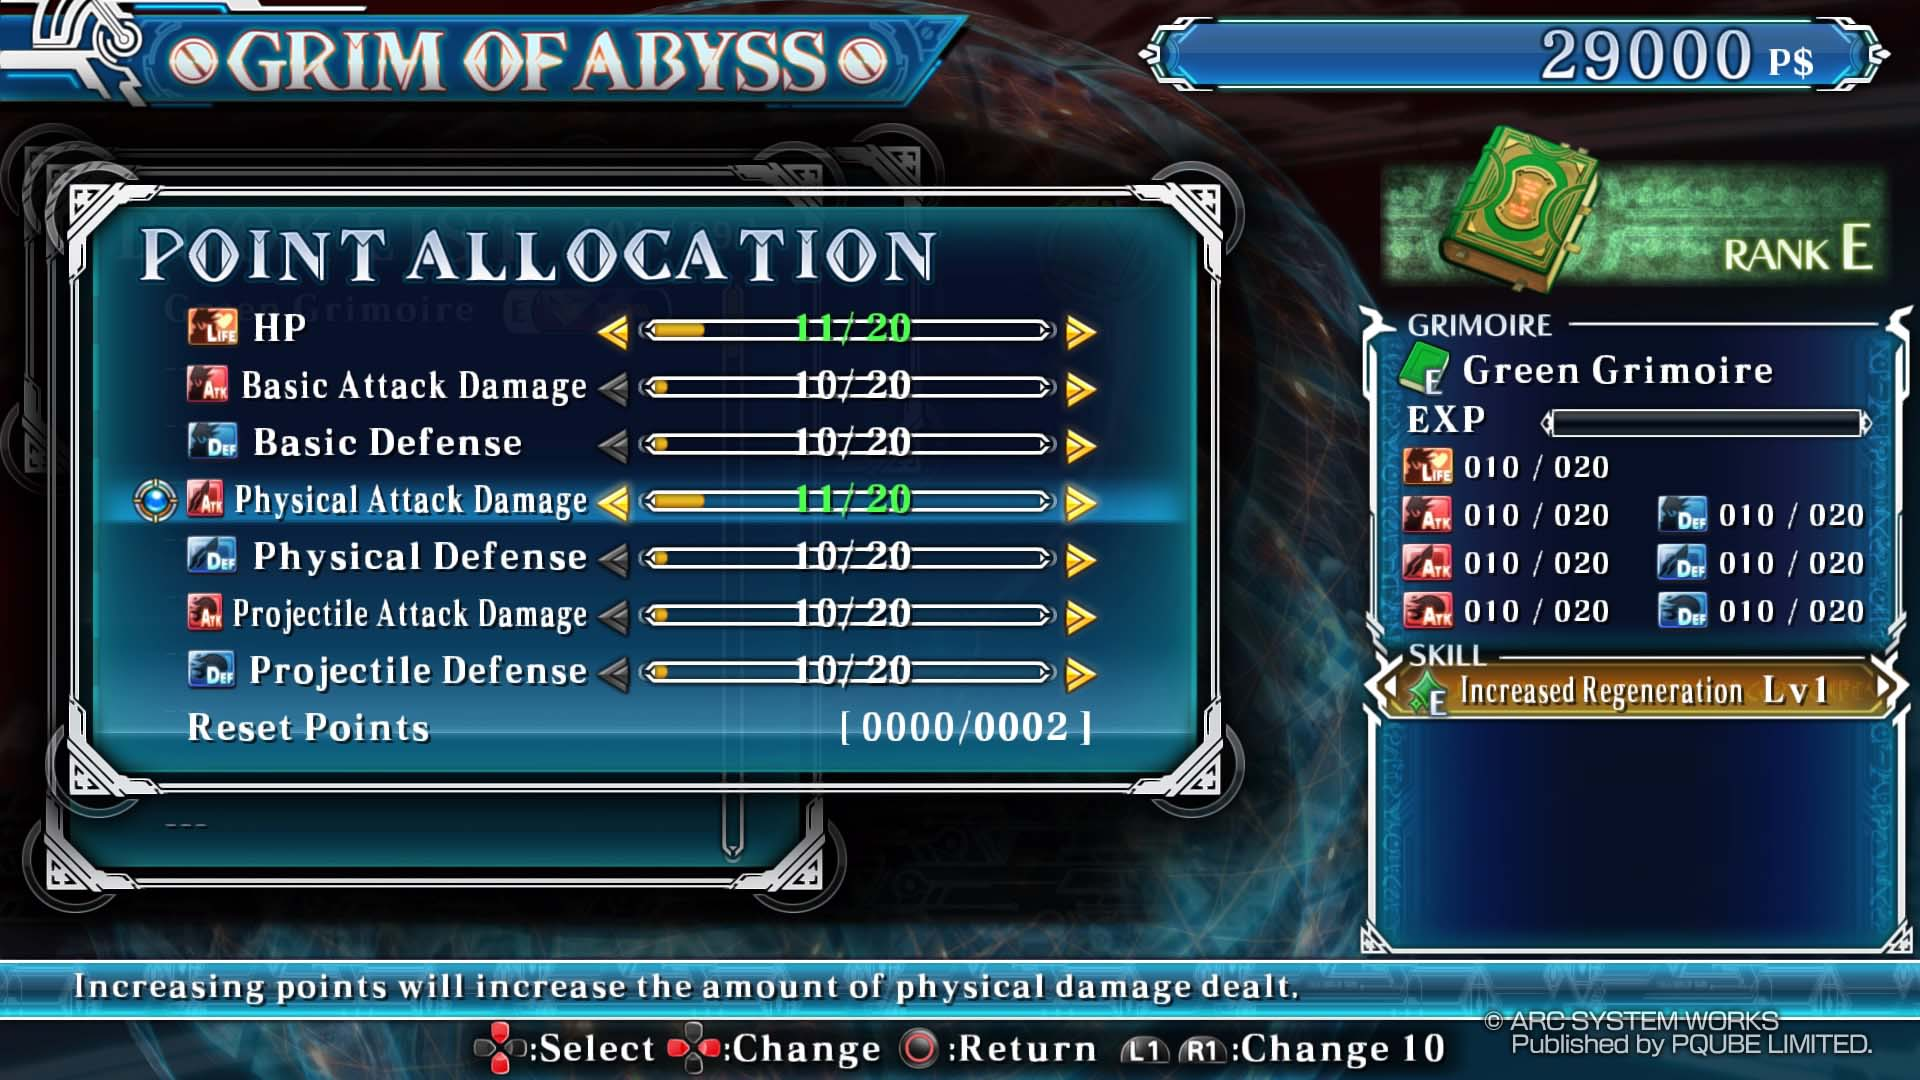 BlazBlue CentralFiction Grim of Abyss